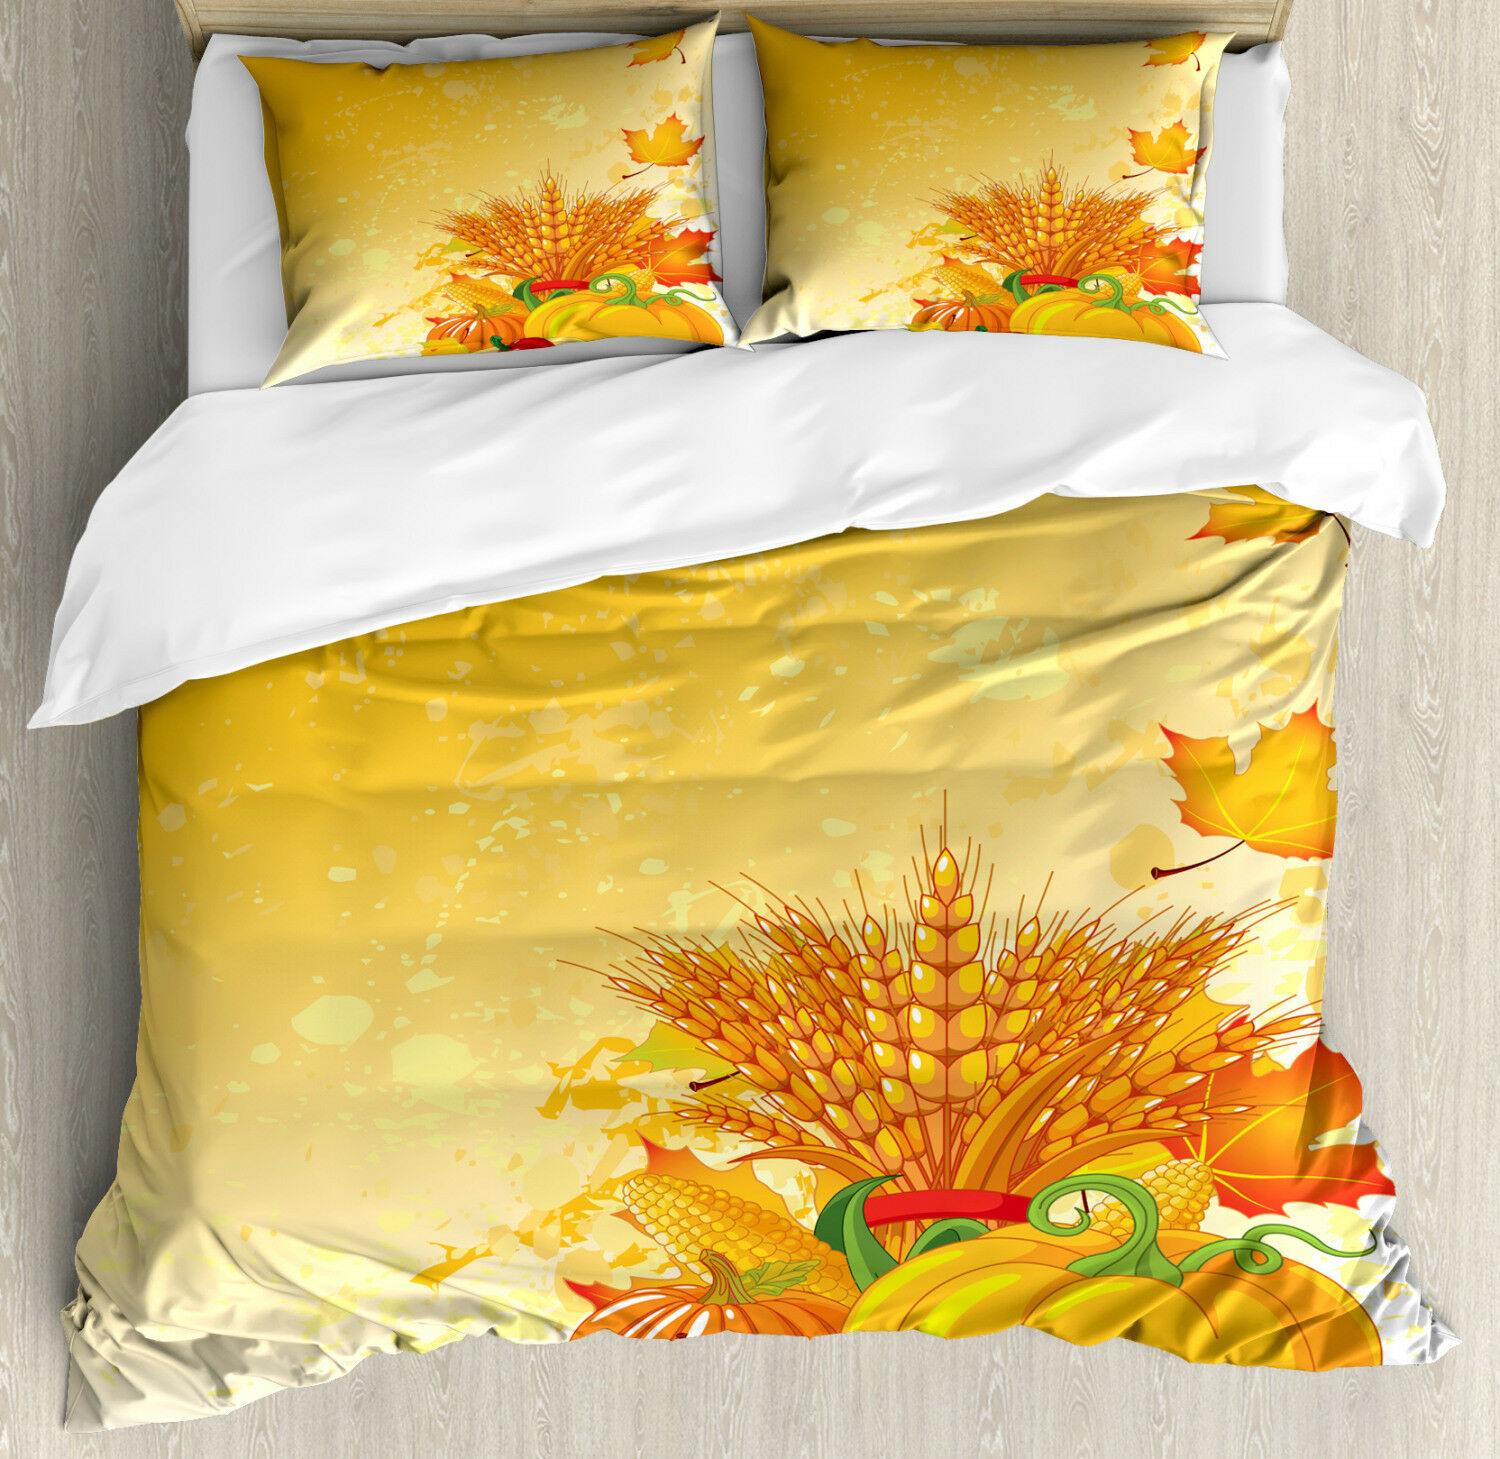 Harvest Duvet Cover Set with Pillow Shams Festive Fall Collection Print